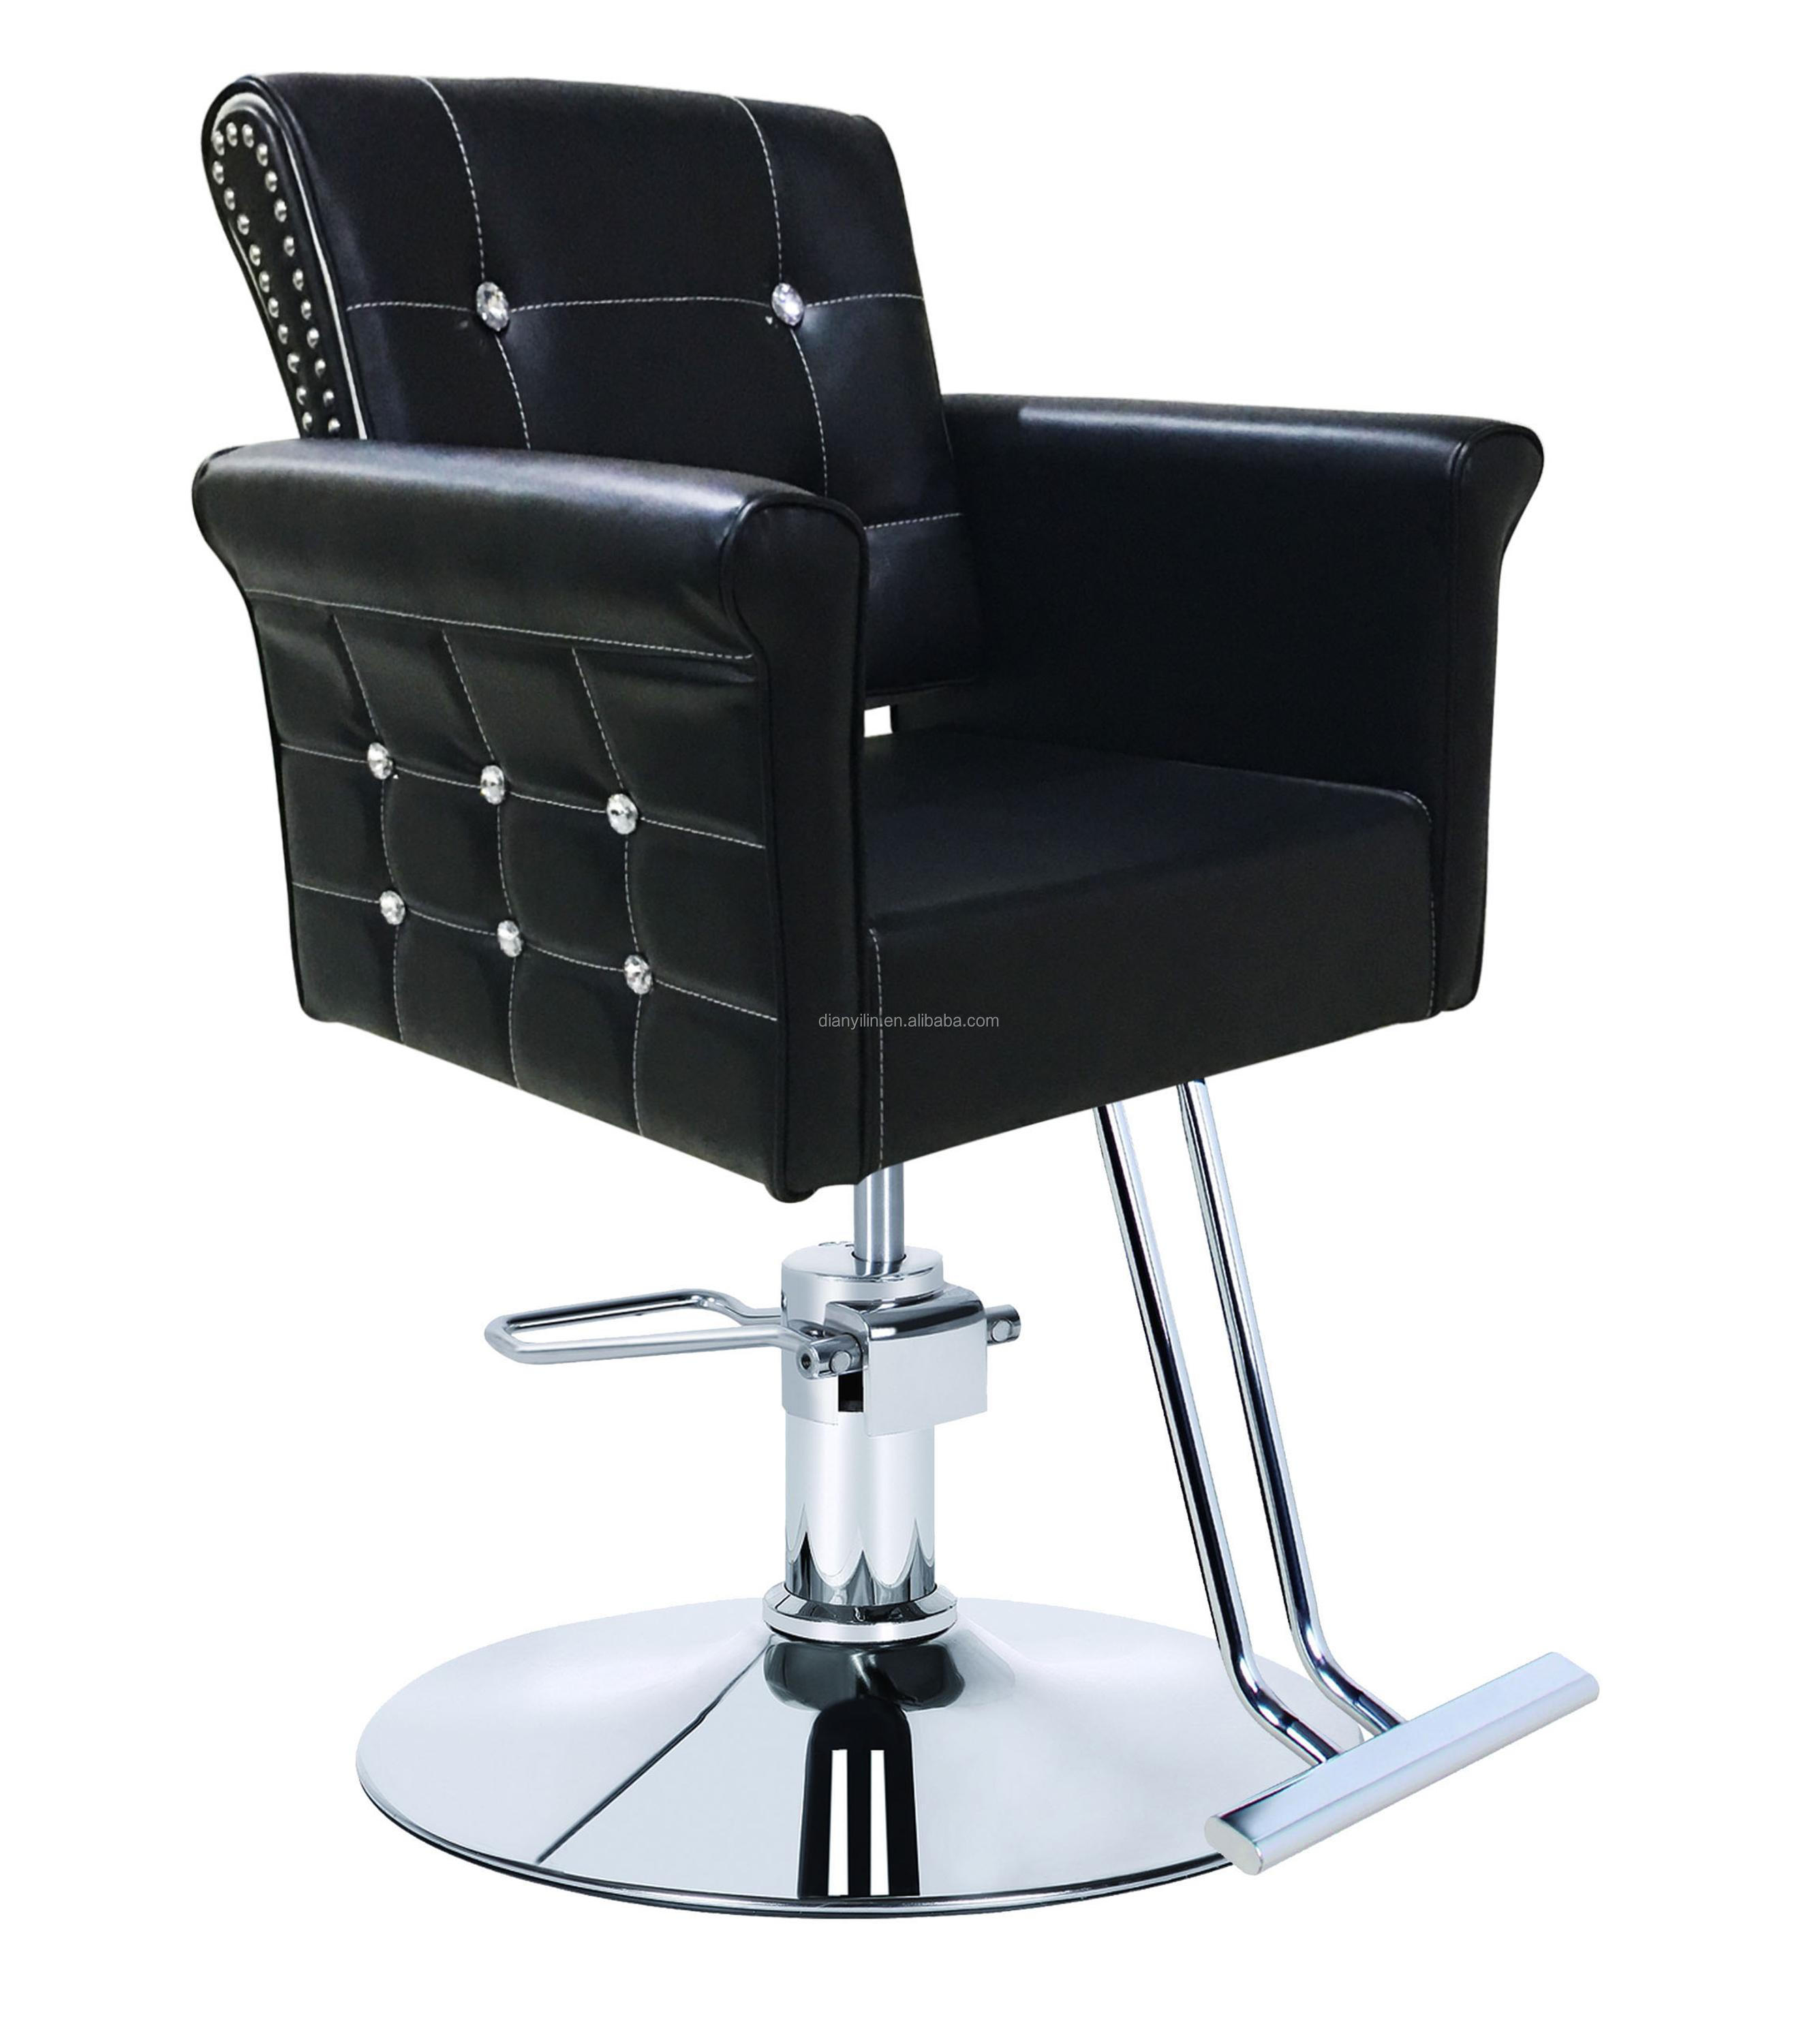 Barber Chairs Price Salon Furniture Men s Barber Chair Used Beauty